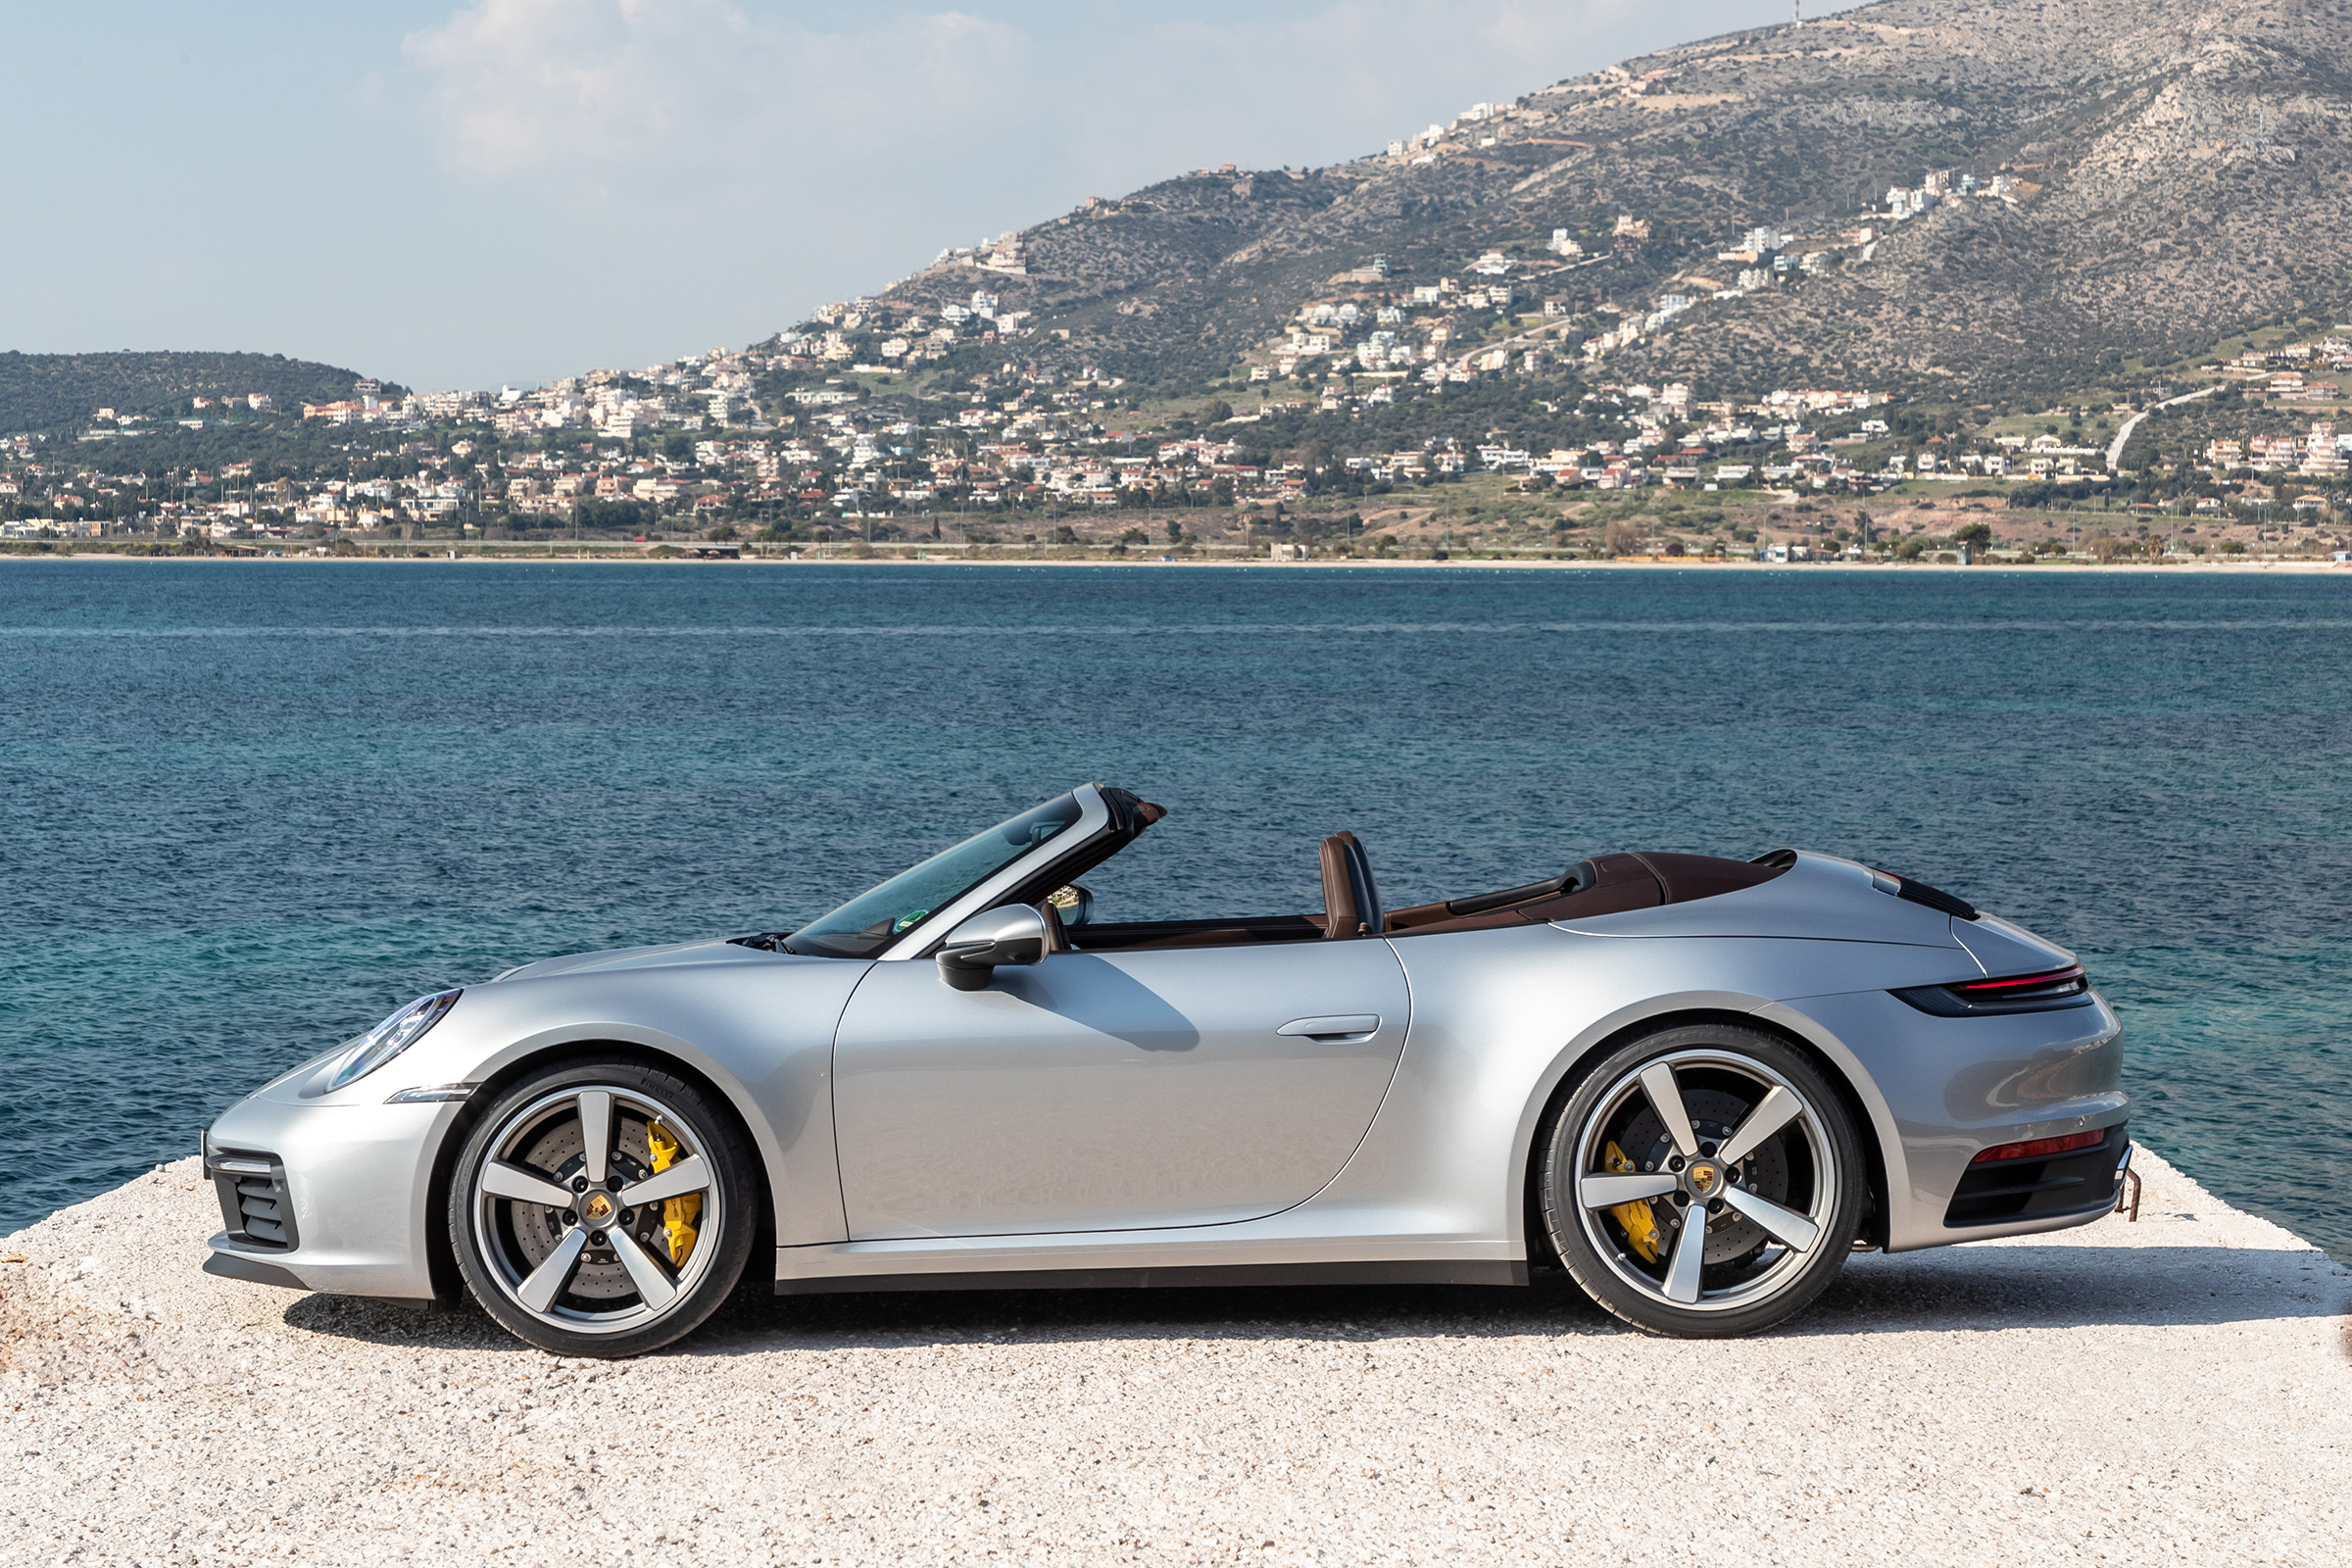 Porsche 911 992 Cabriolet Review New 911 Loses Its Roof But Sacrifices Little Else Evo